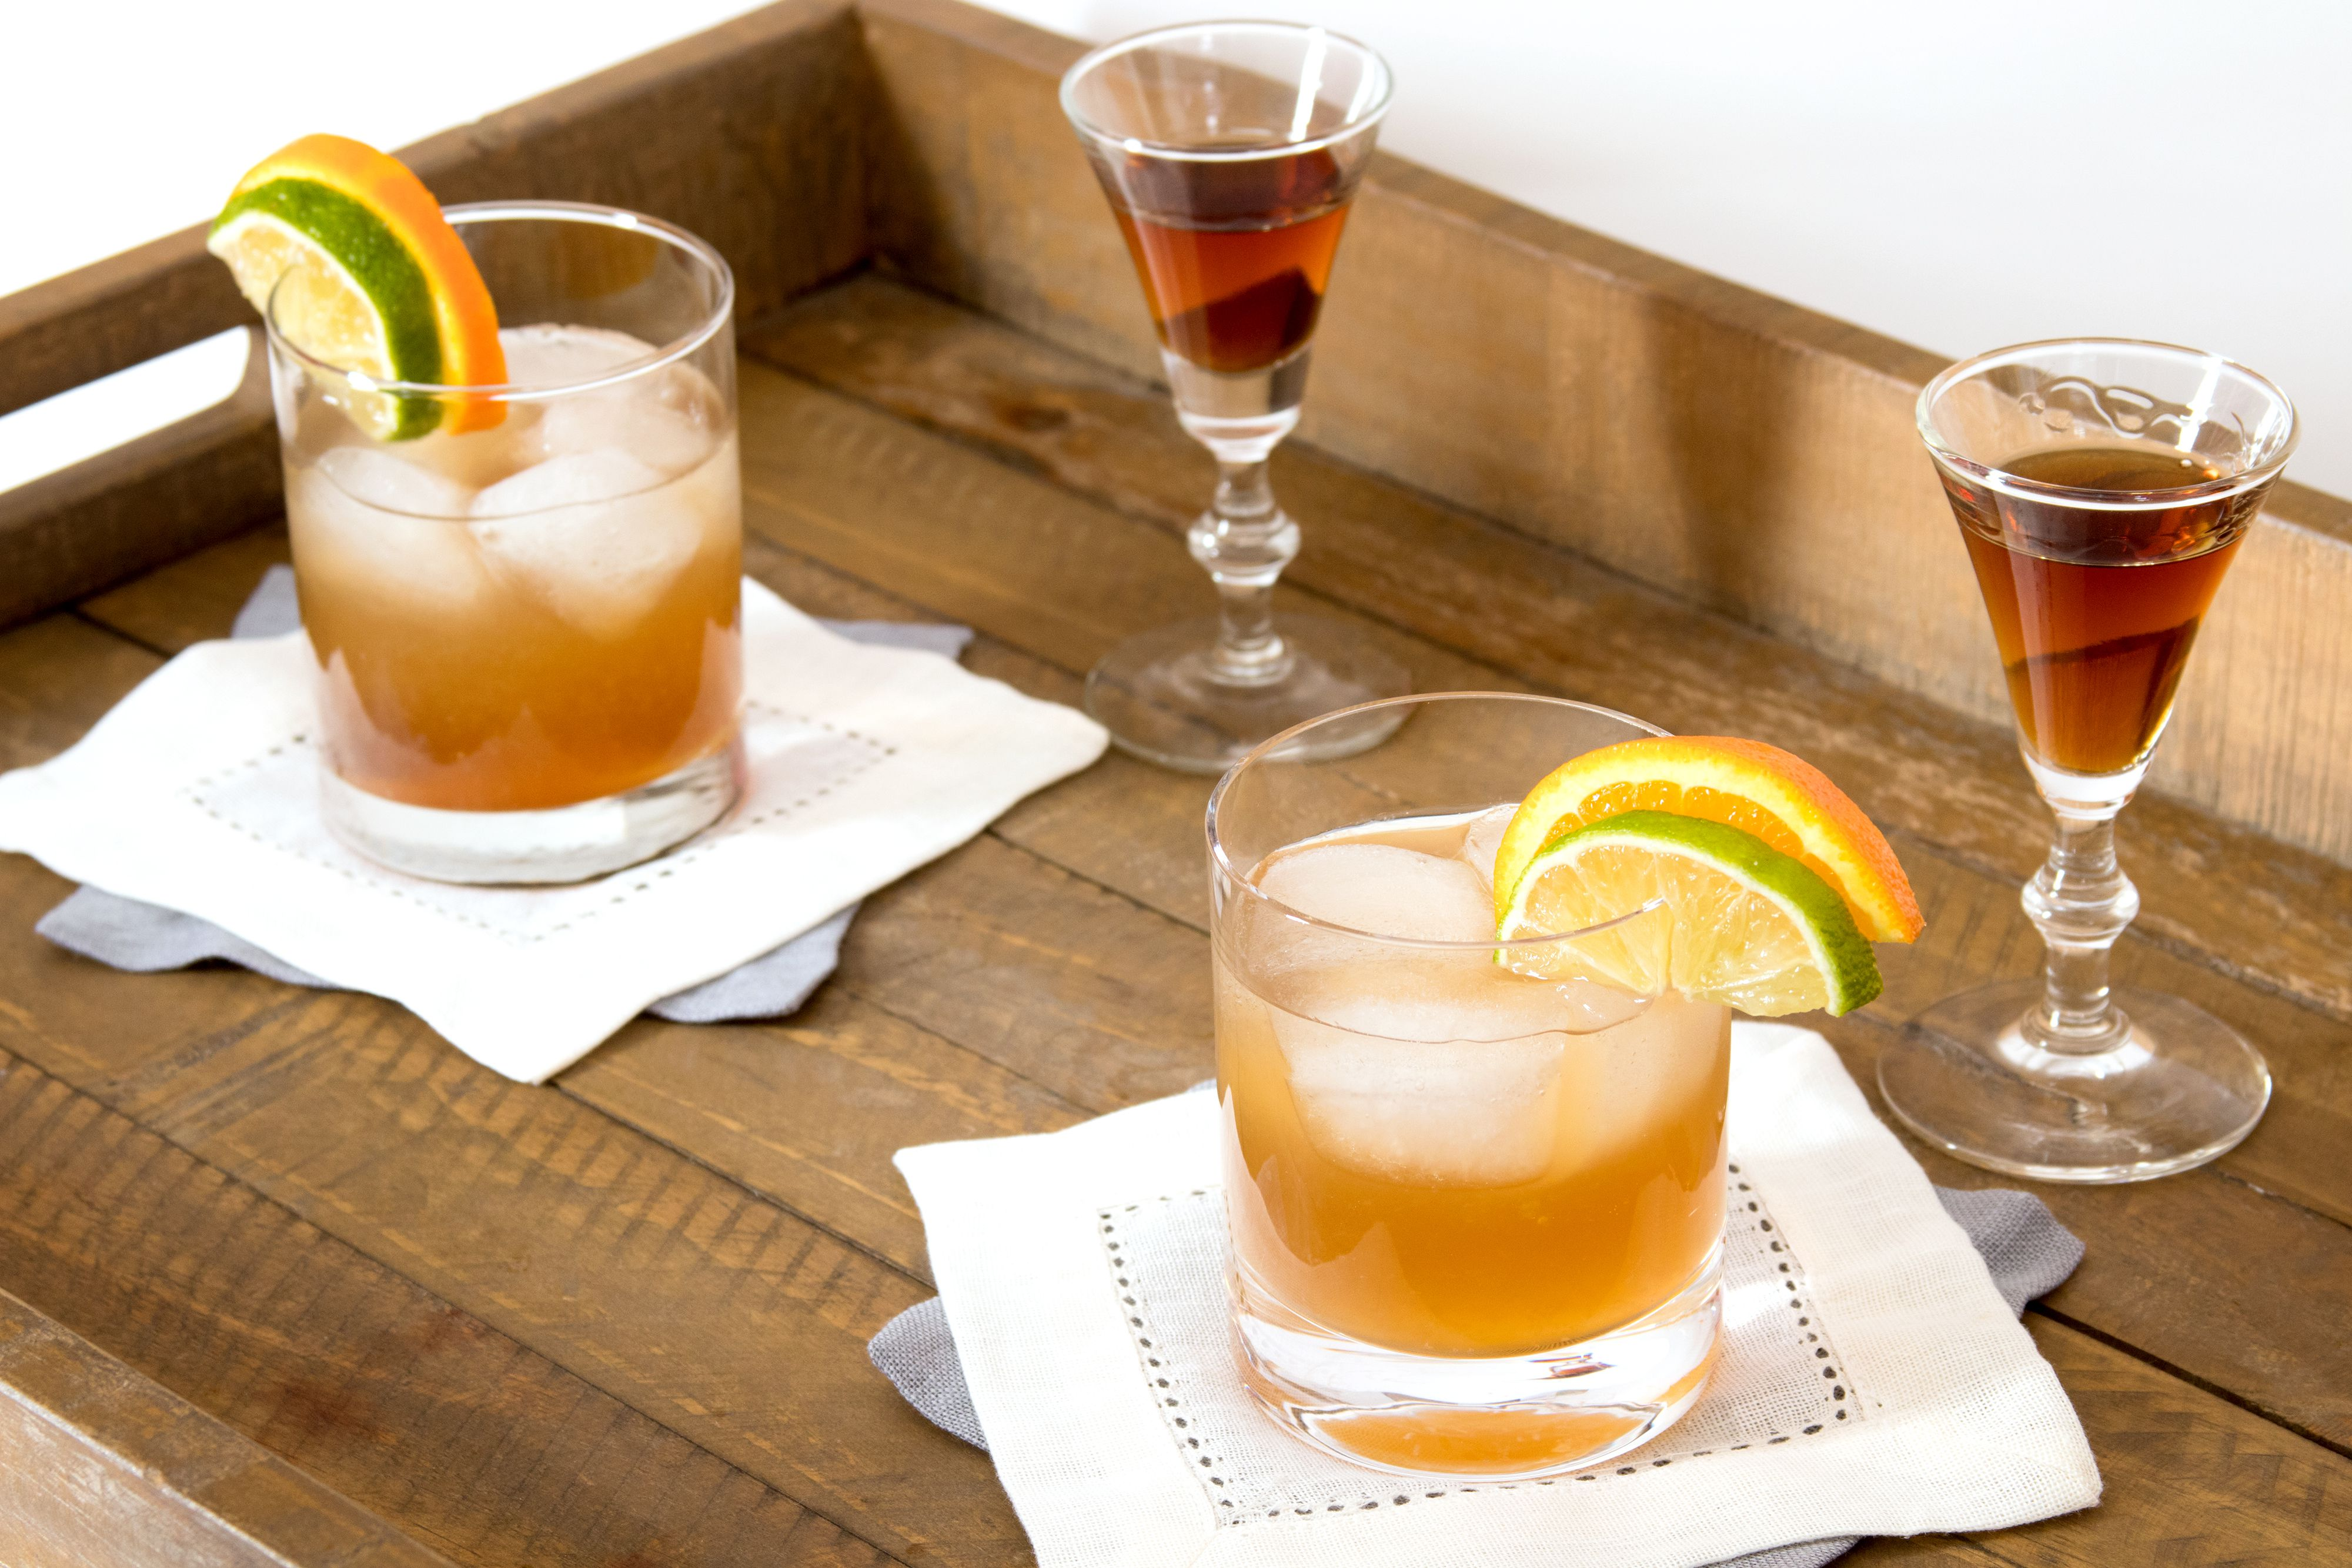 Give Your Margarita an Italian Spin With a Shot of Amaretto